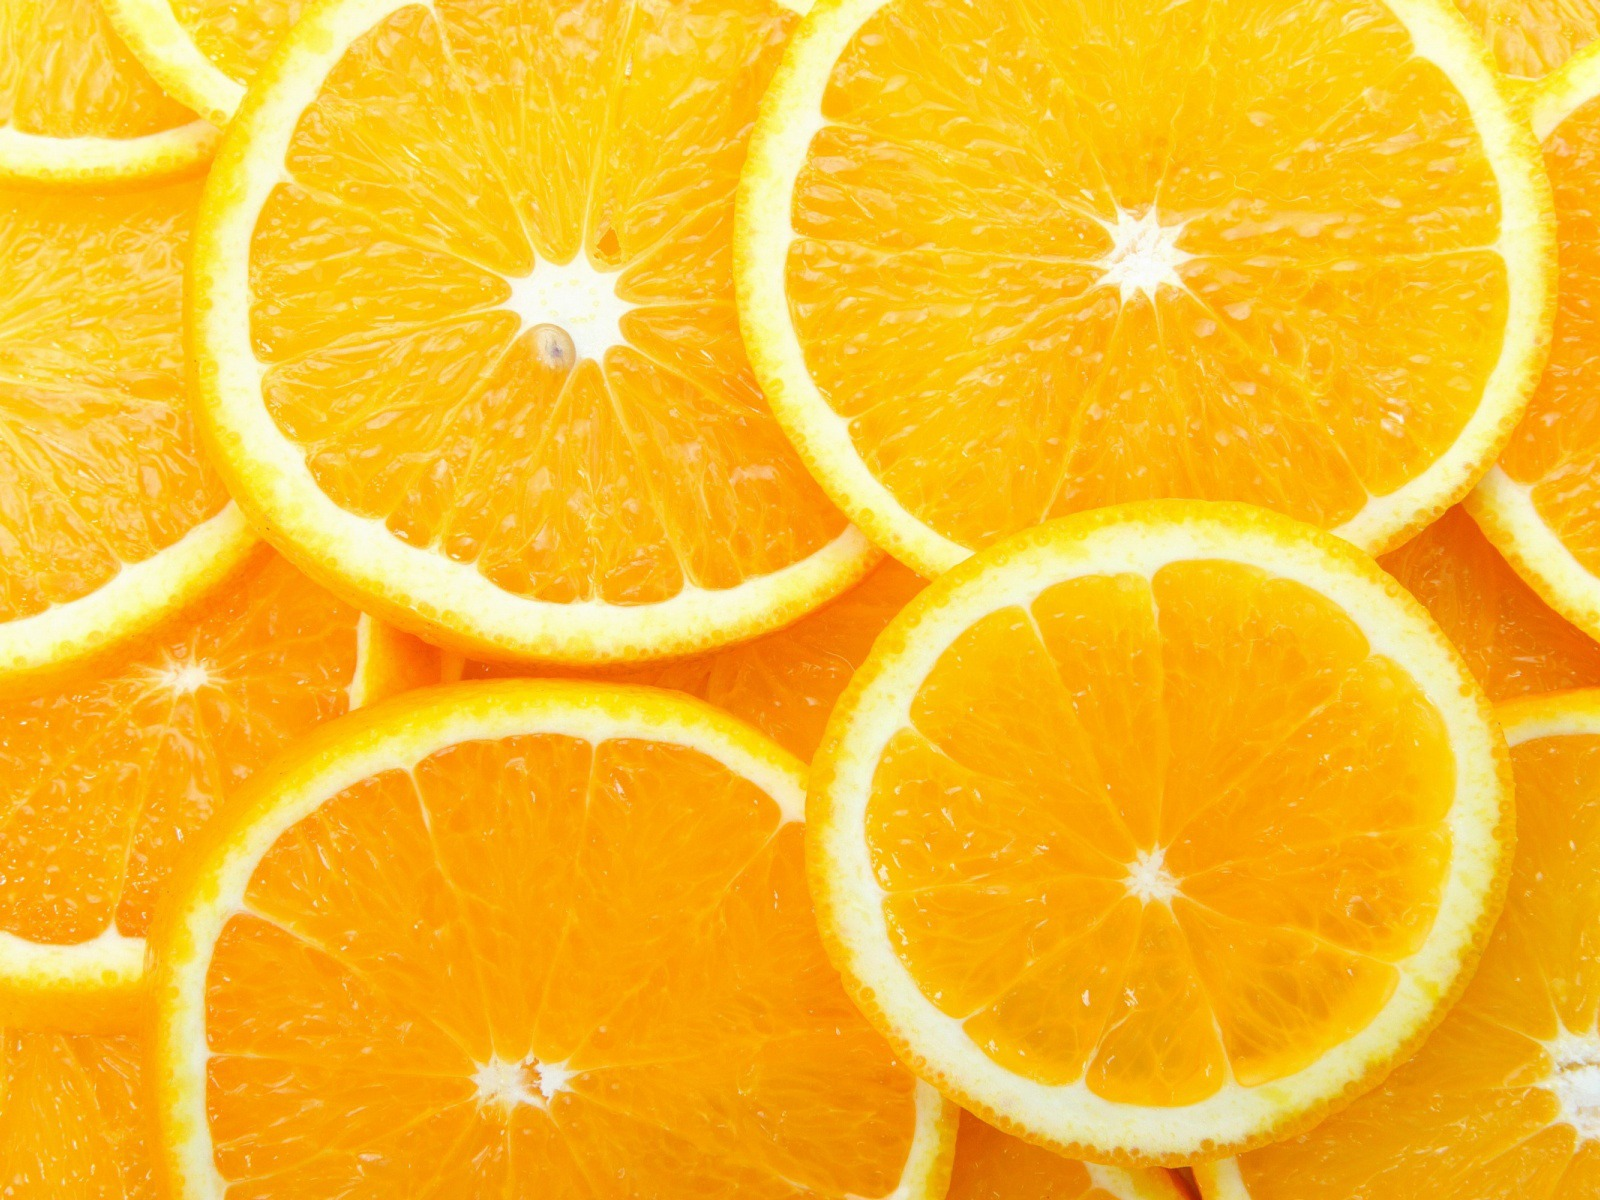 Oranges texture background